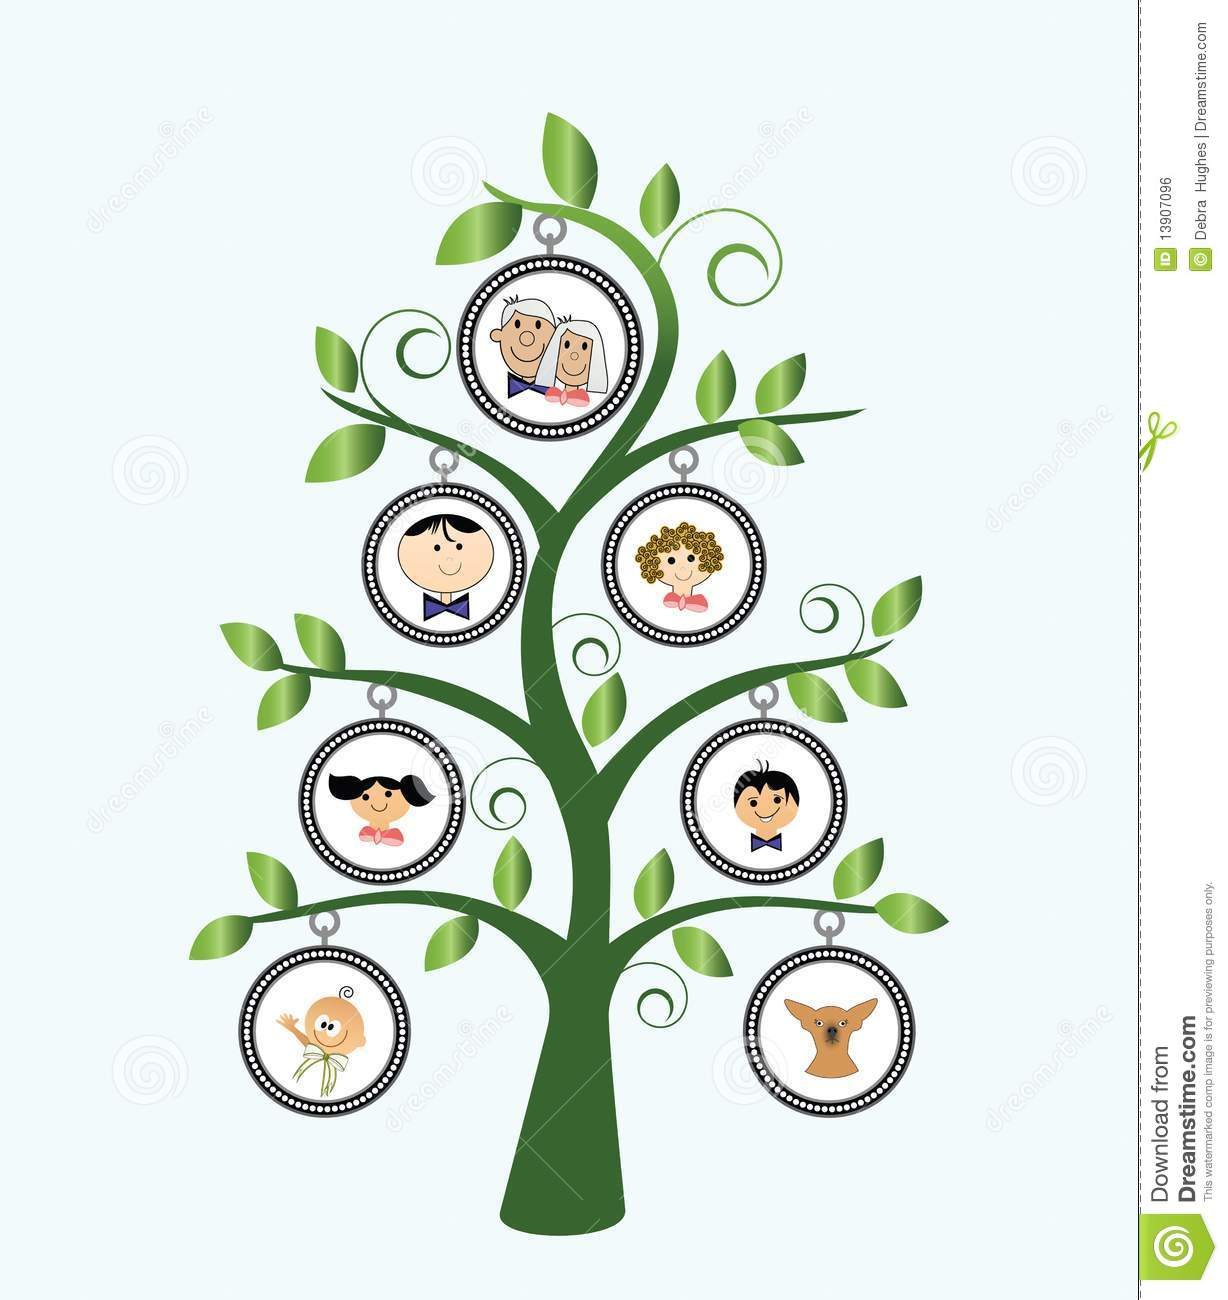 Family Tree stylized with cartoon family and leaves.